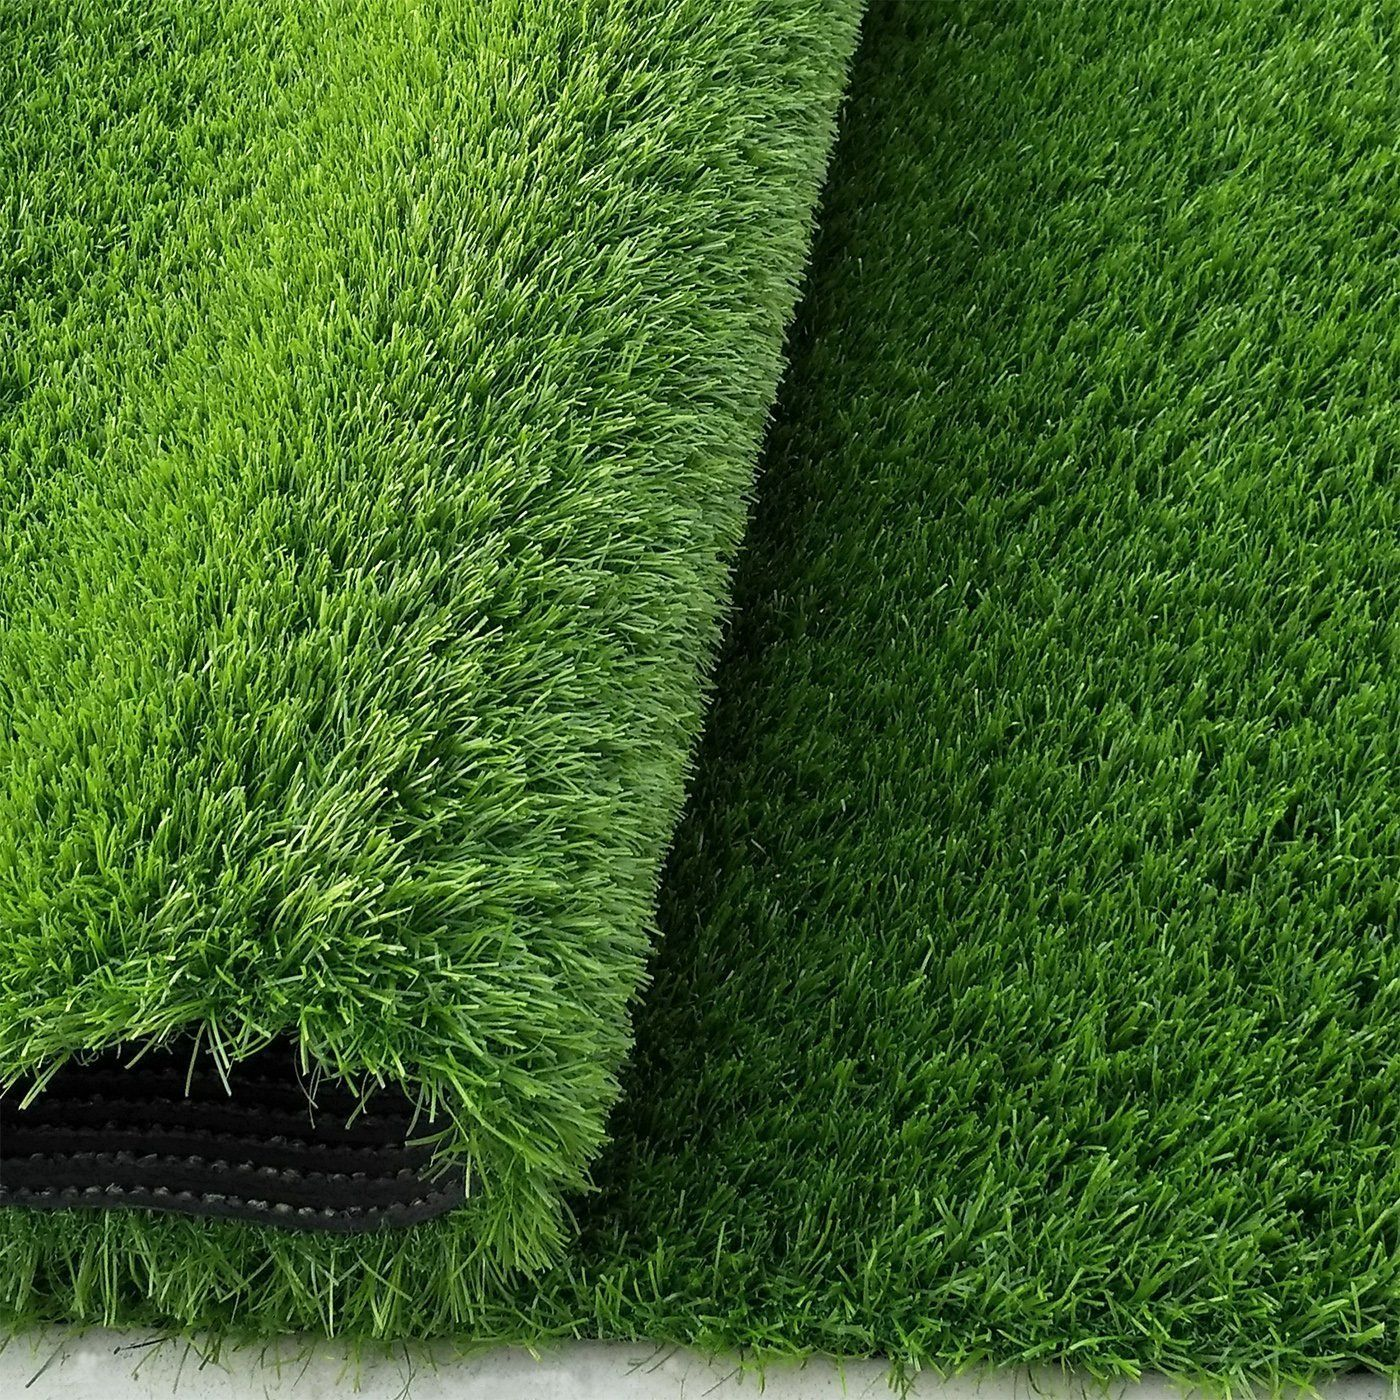 Kuber Industries™45 MM Artificial Grass For Balcony,Grass Carpet Soft And Durable Plastic Turf Carpet Mat, Artificial Grass(3.3 x 11 Feet) 40 x 132 inches